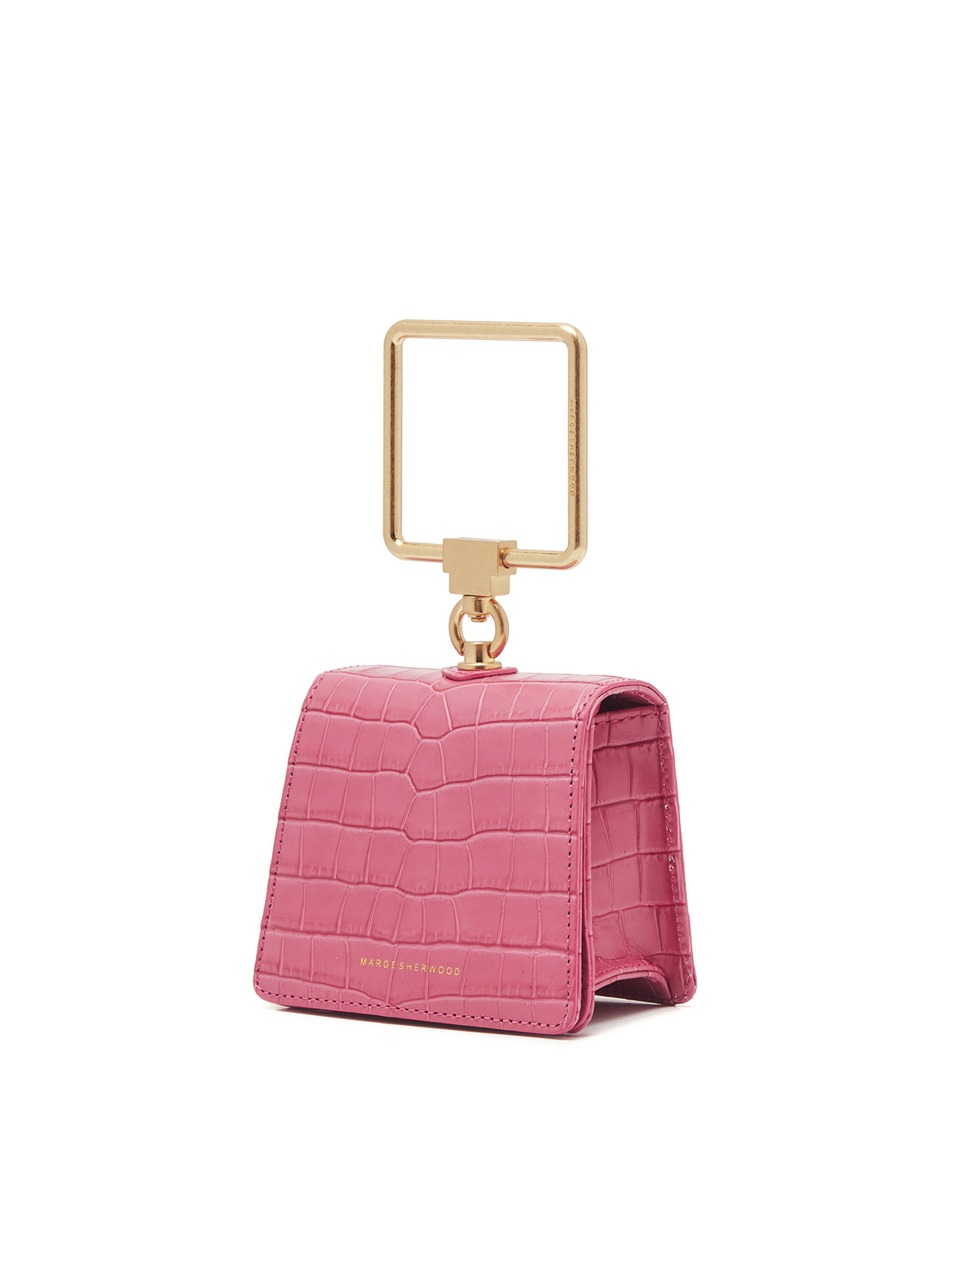 [21SS] PUMP HANDLE MINI_pink croc matisse